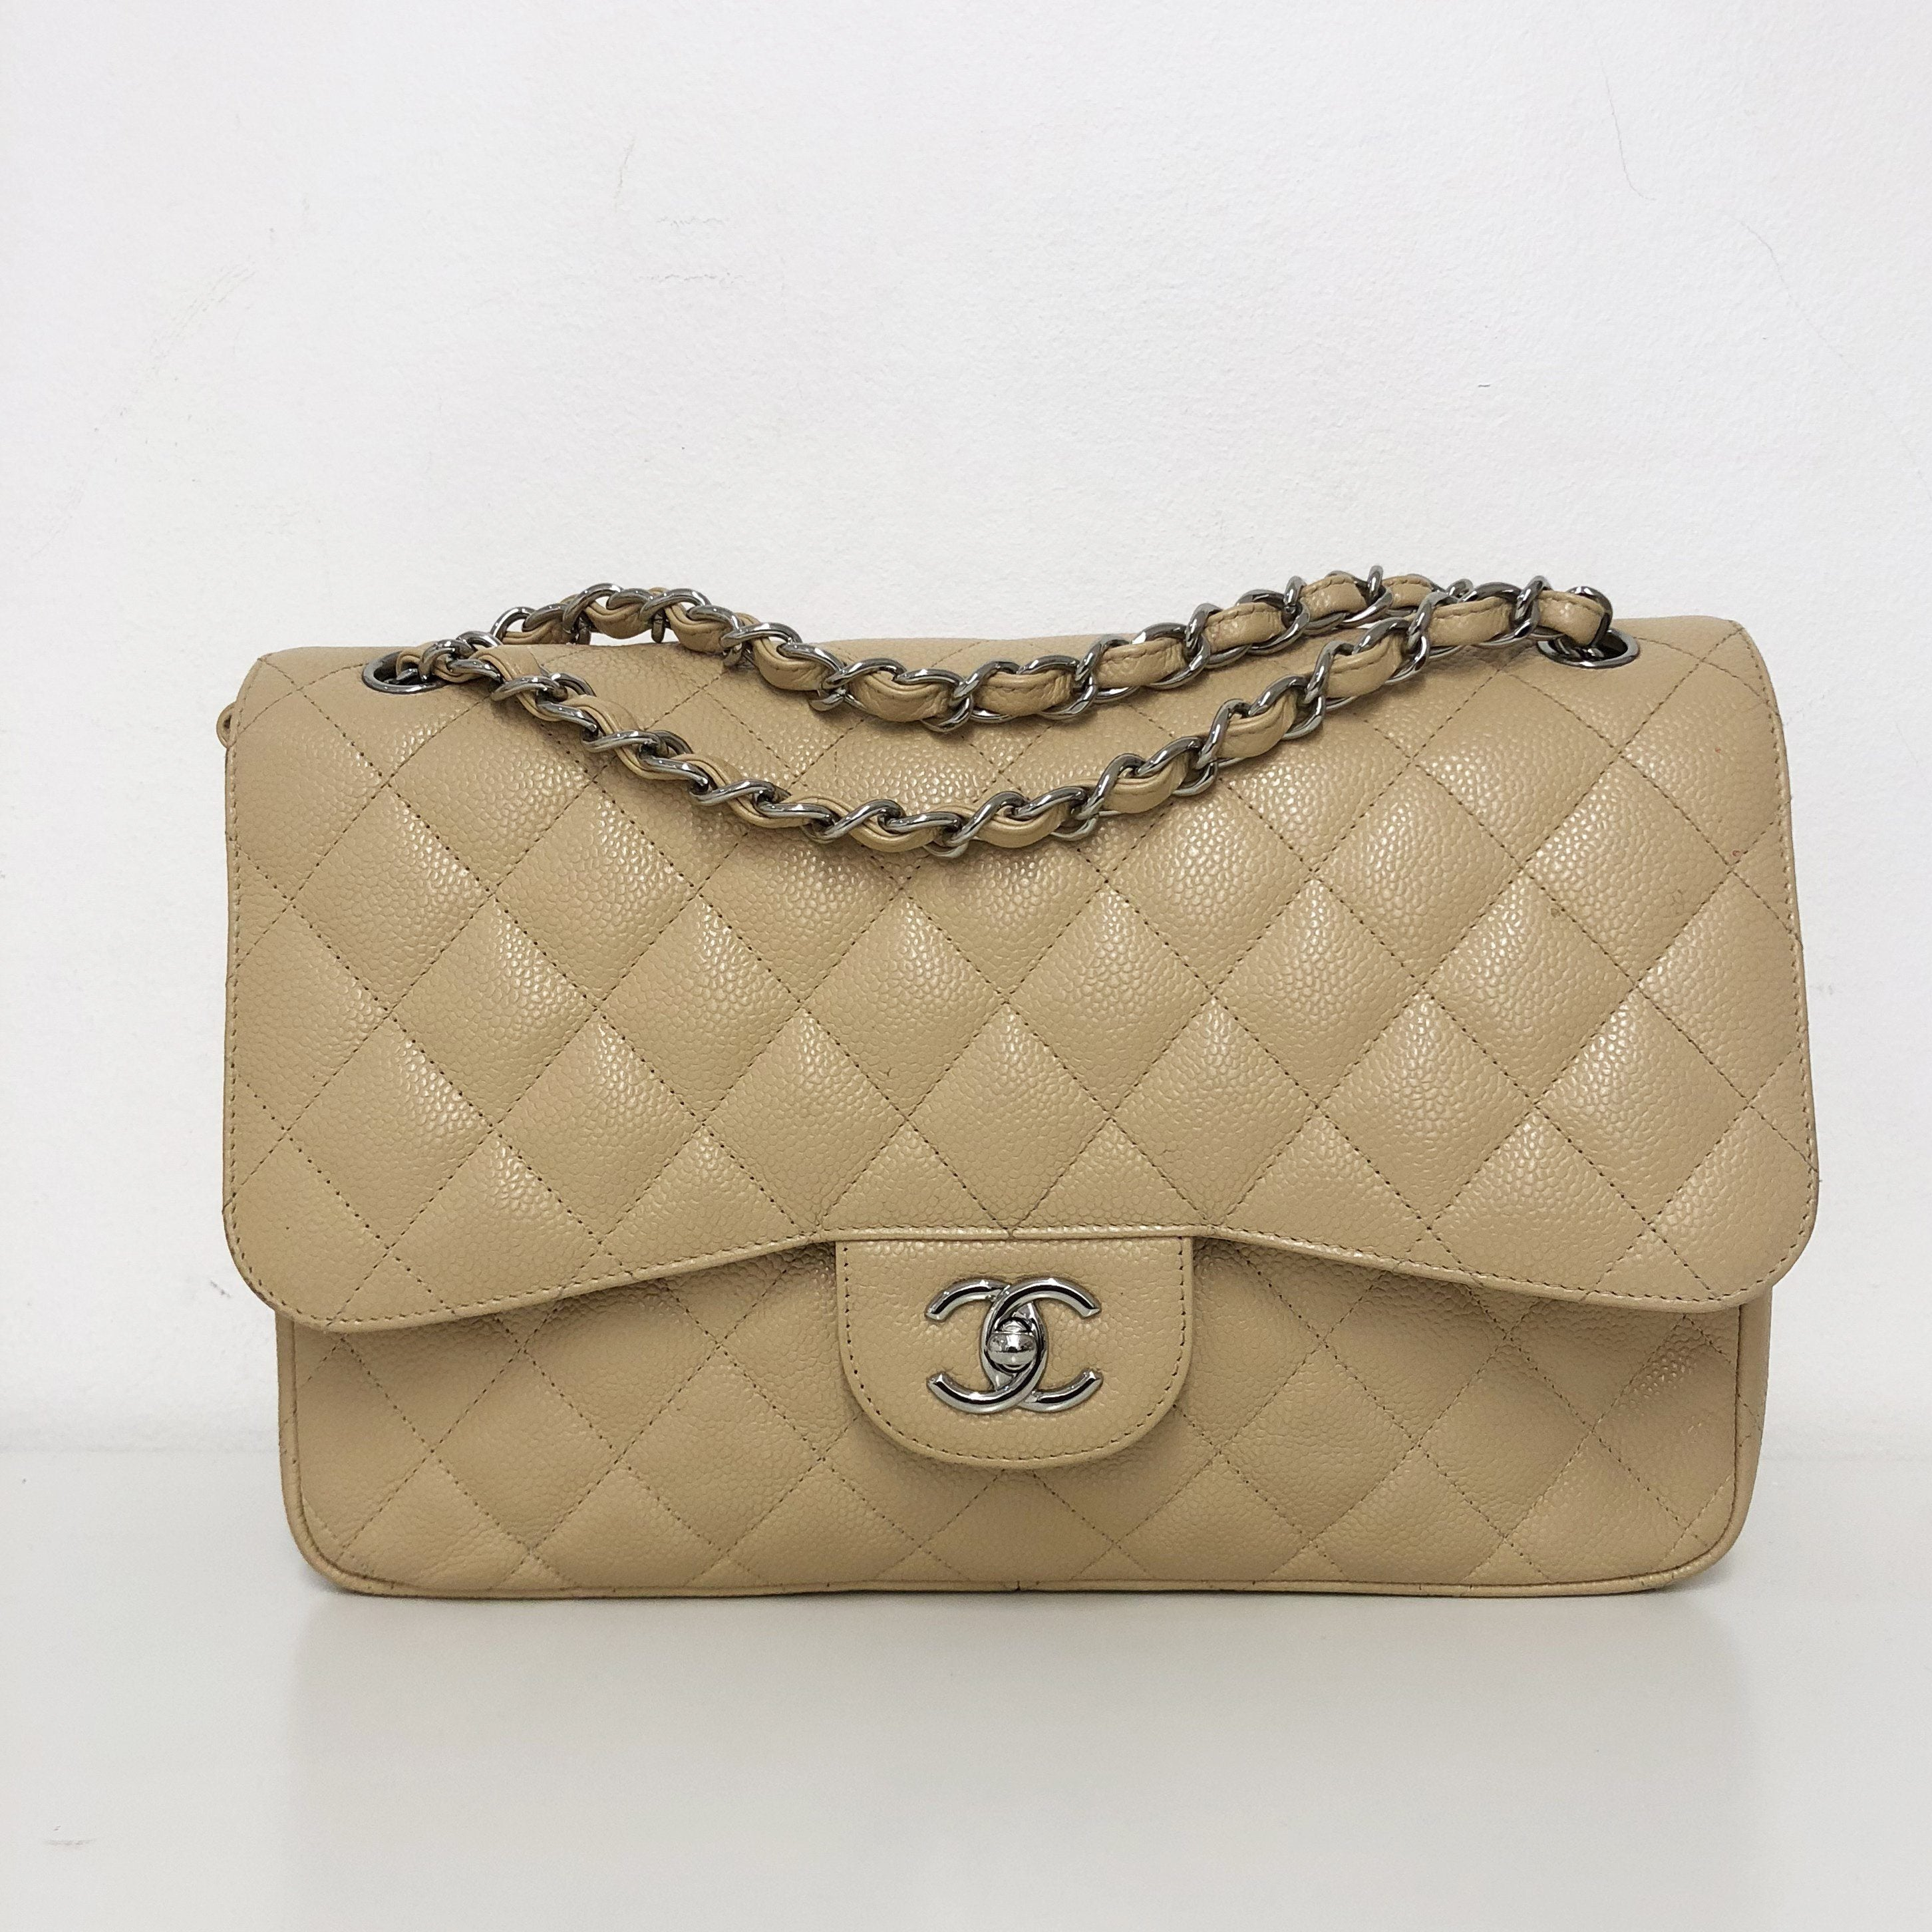 Chanel Beige Quilted Caviar Leather Jumbo Classic Double Flap Bag